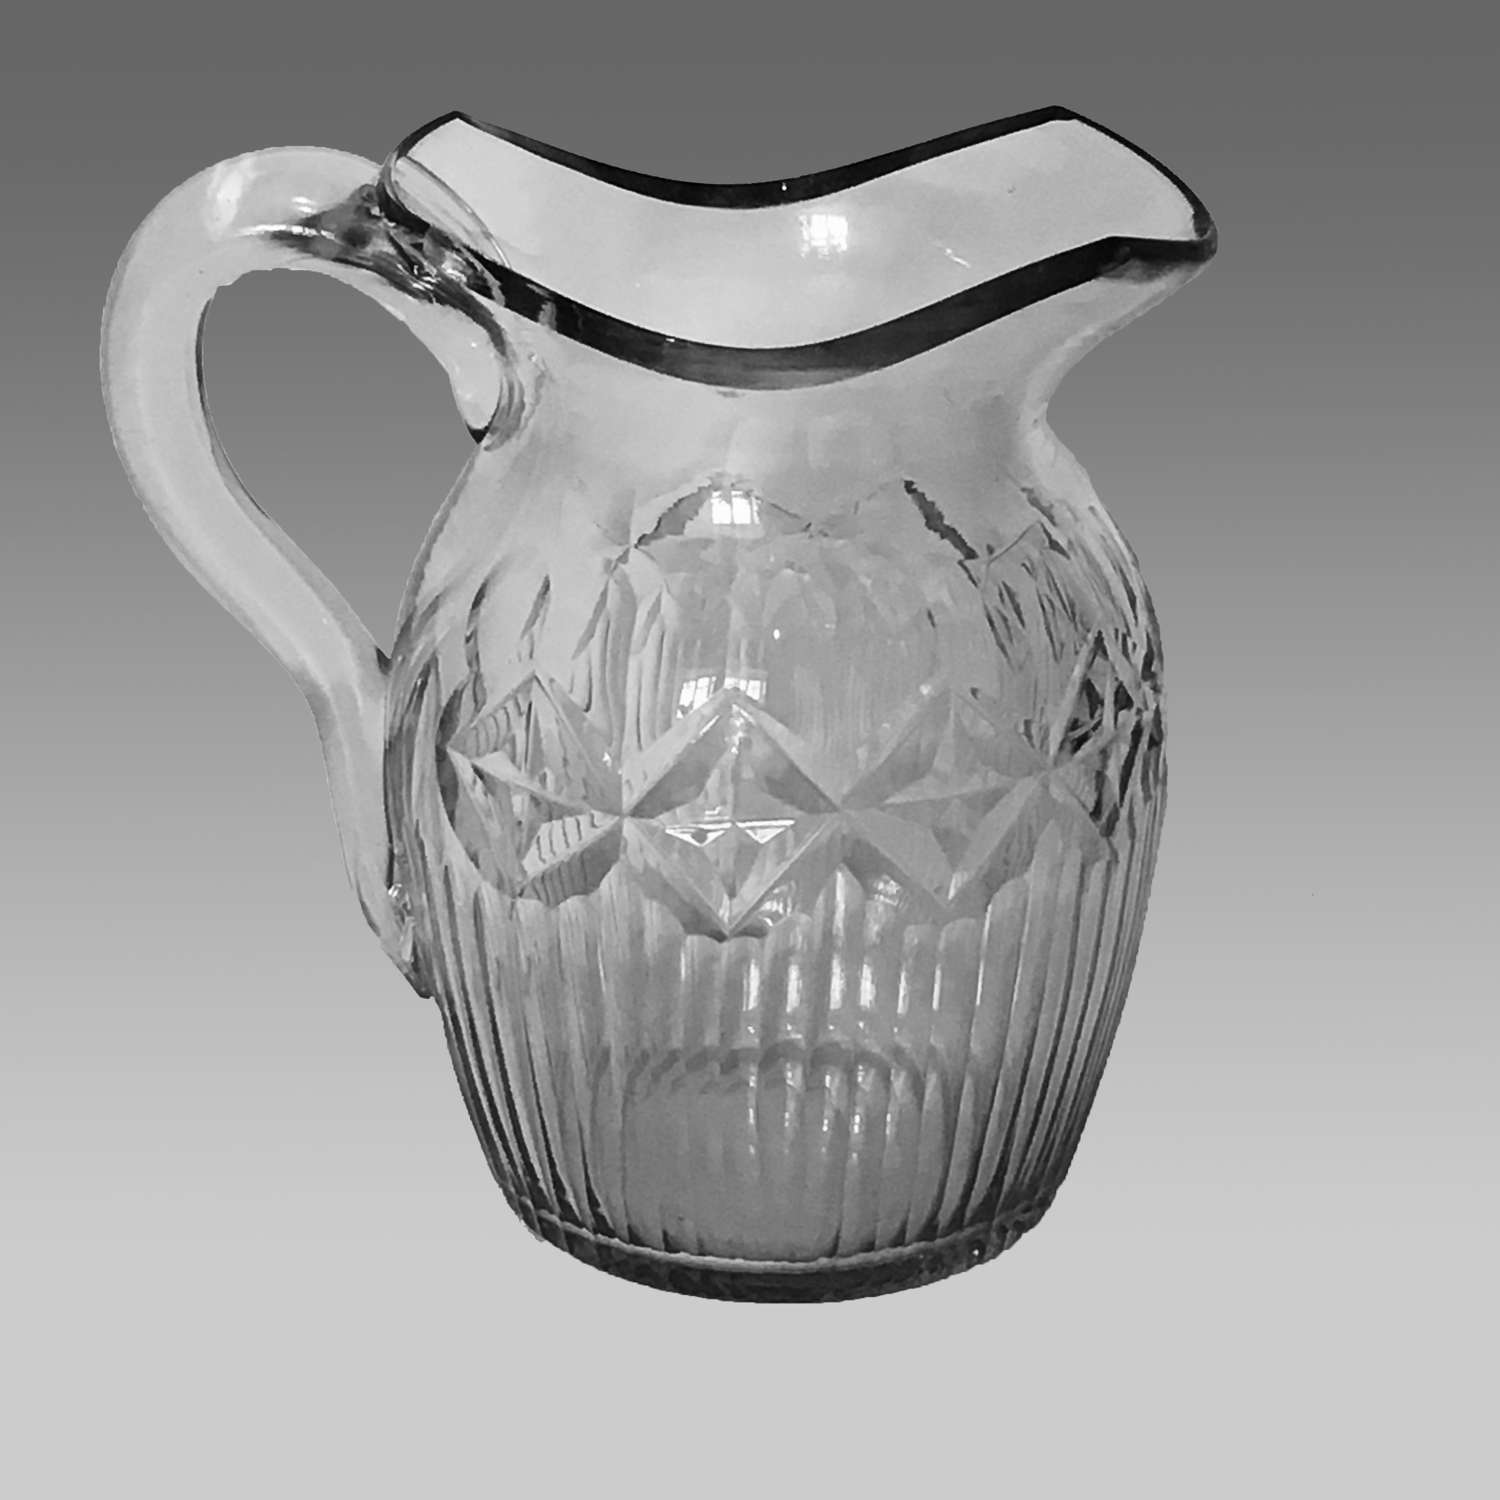 Irish Georgian water jug